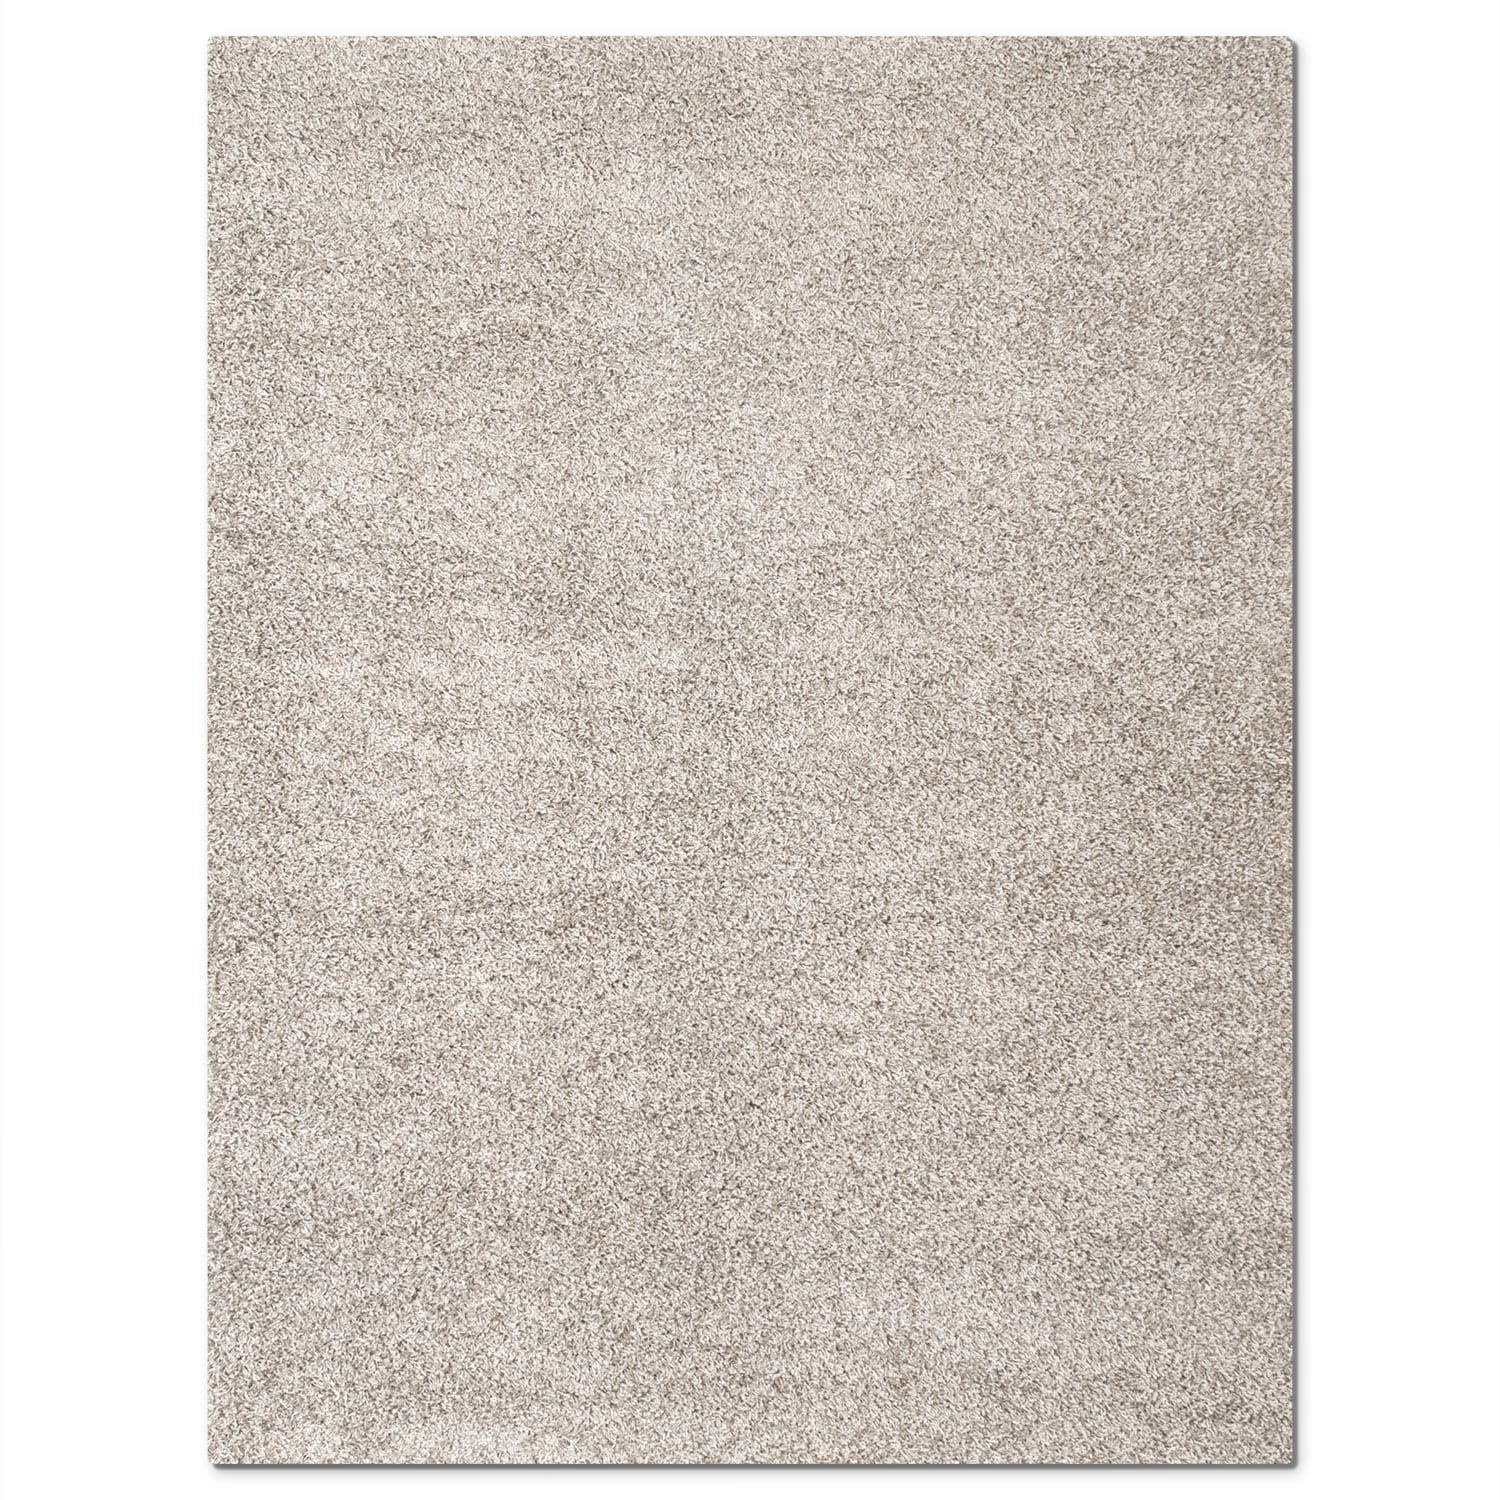 Domino Gray Shag Area Rug (5' x 8')